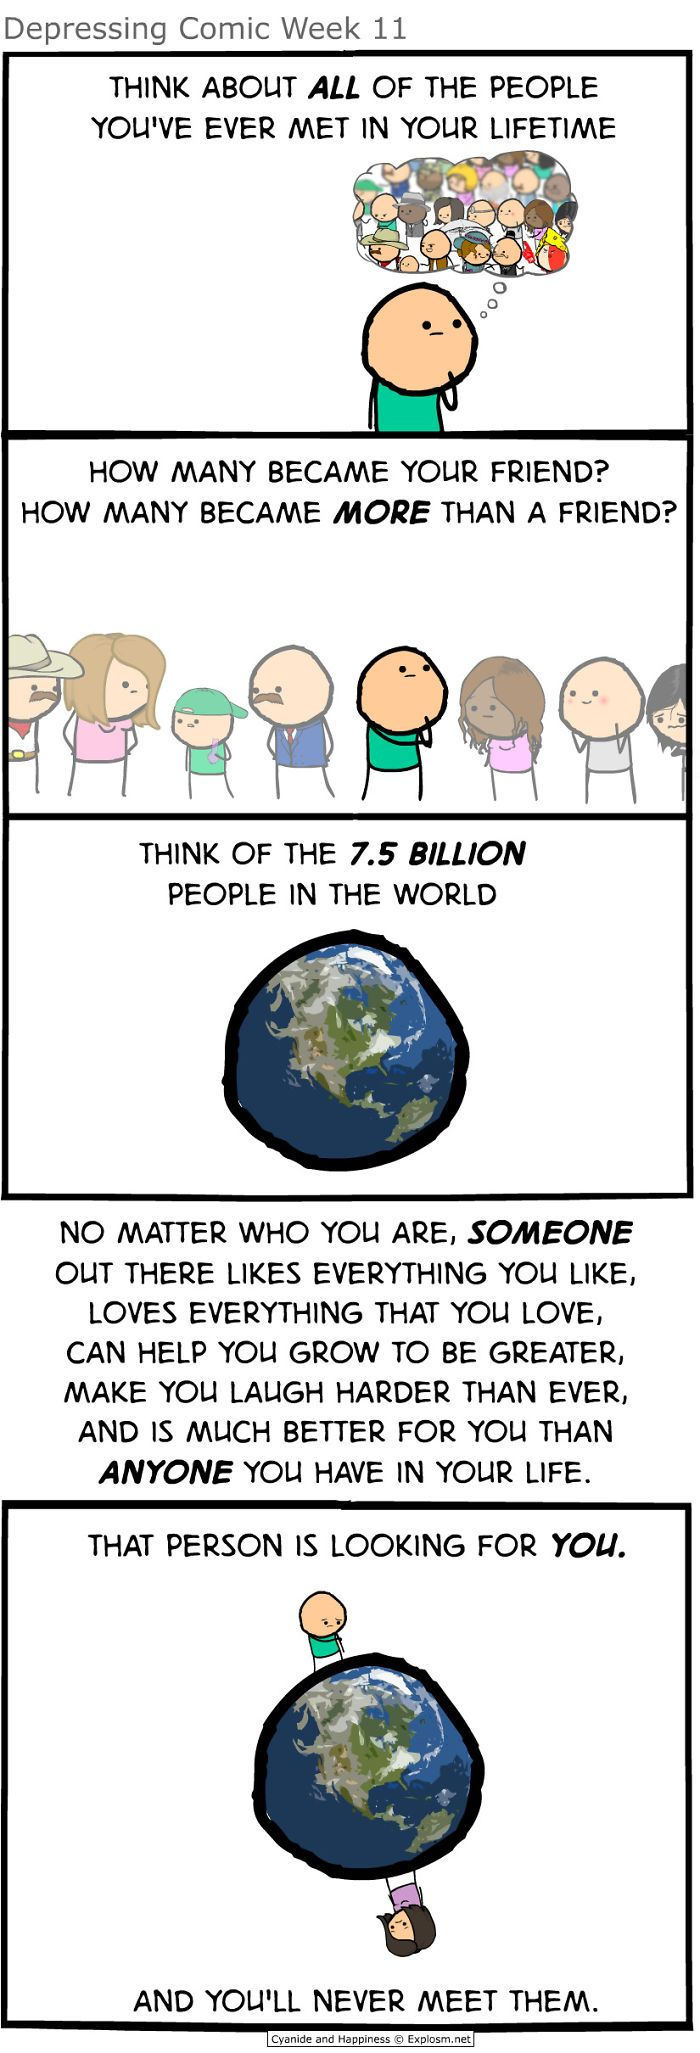 15+ Hilariously Inappropriate Comics About Relationships By Cyanide ...